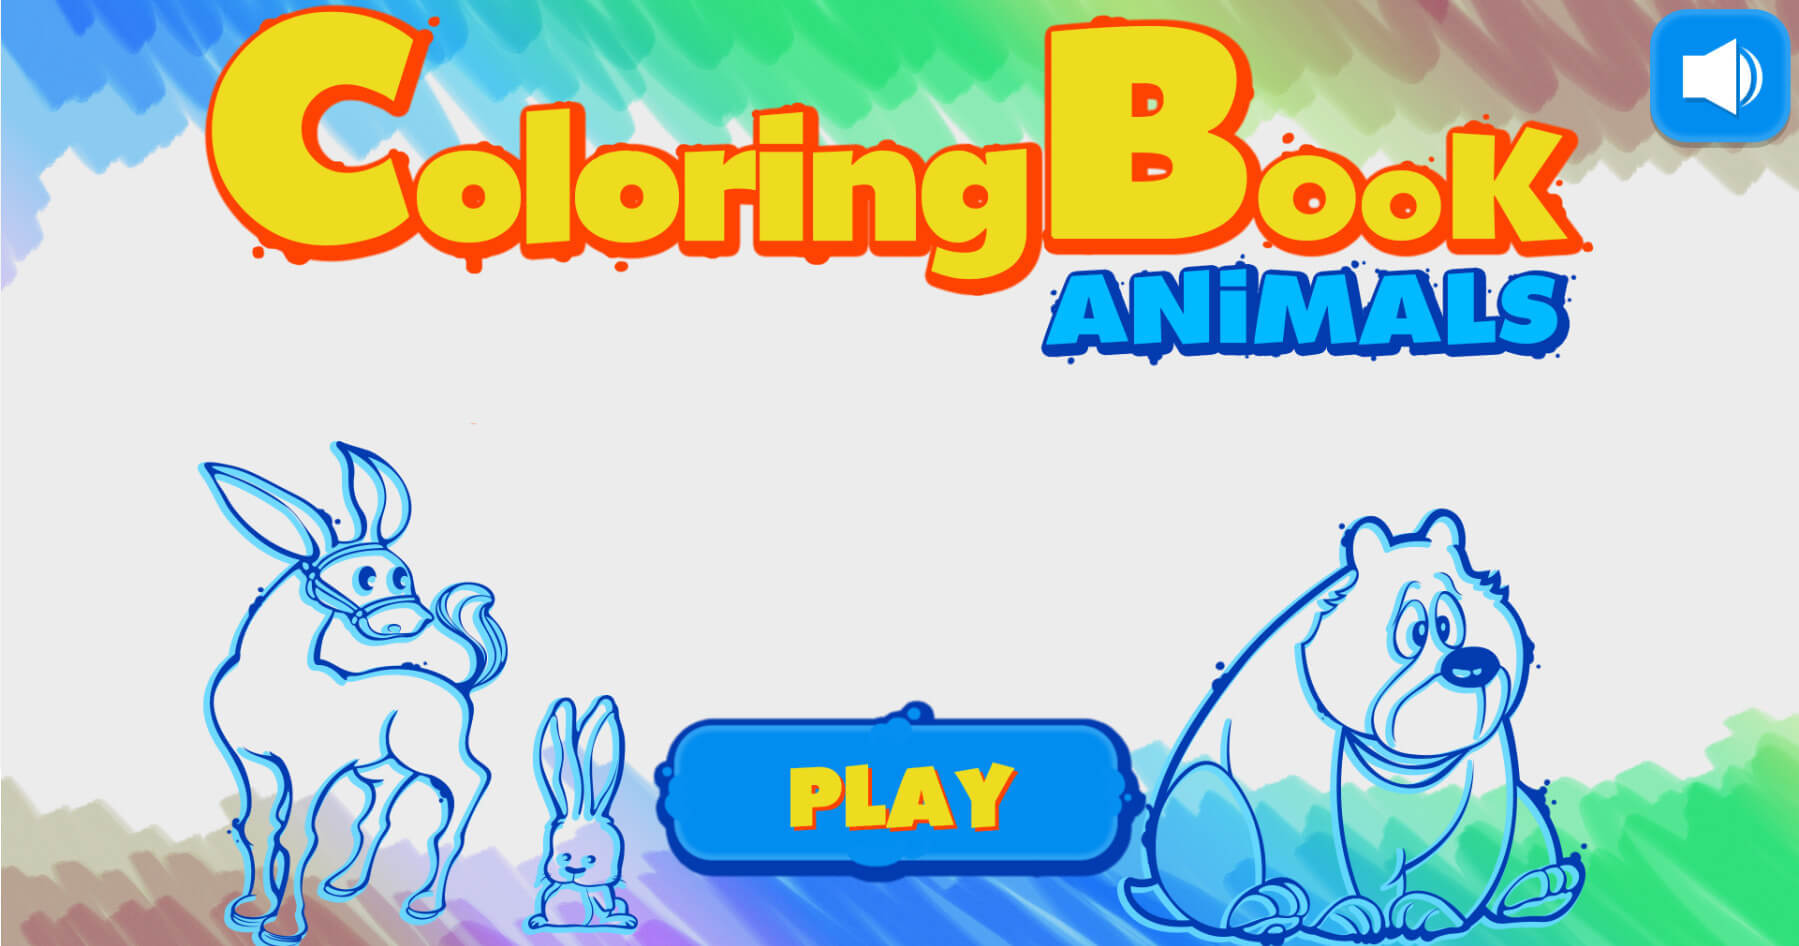 Coloring book html5 - Html5 Coloring Book Animals Html5 Game